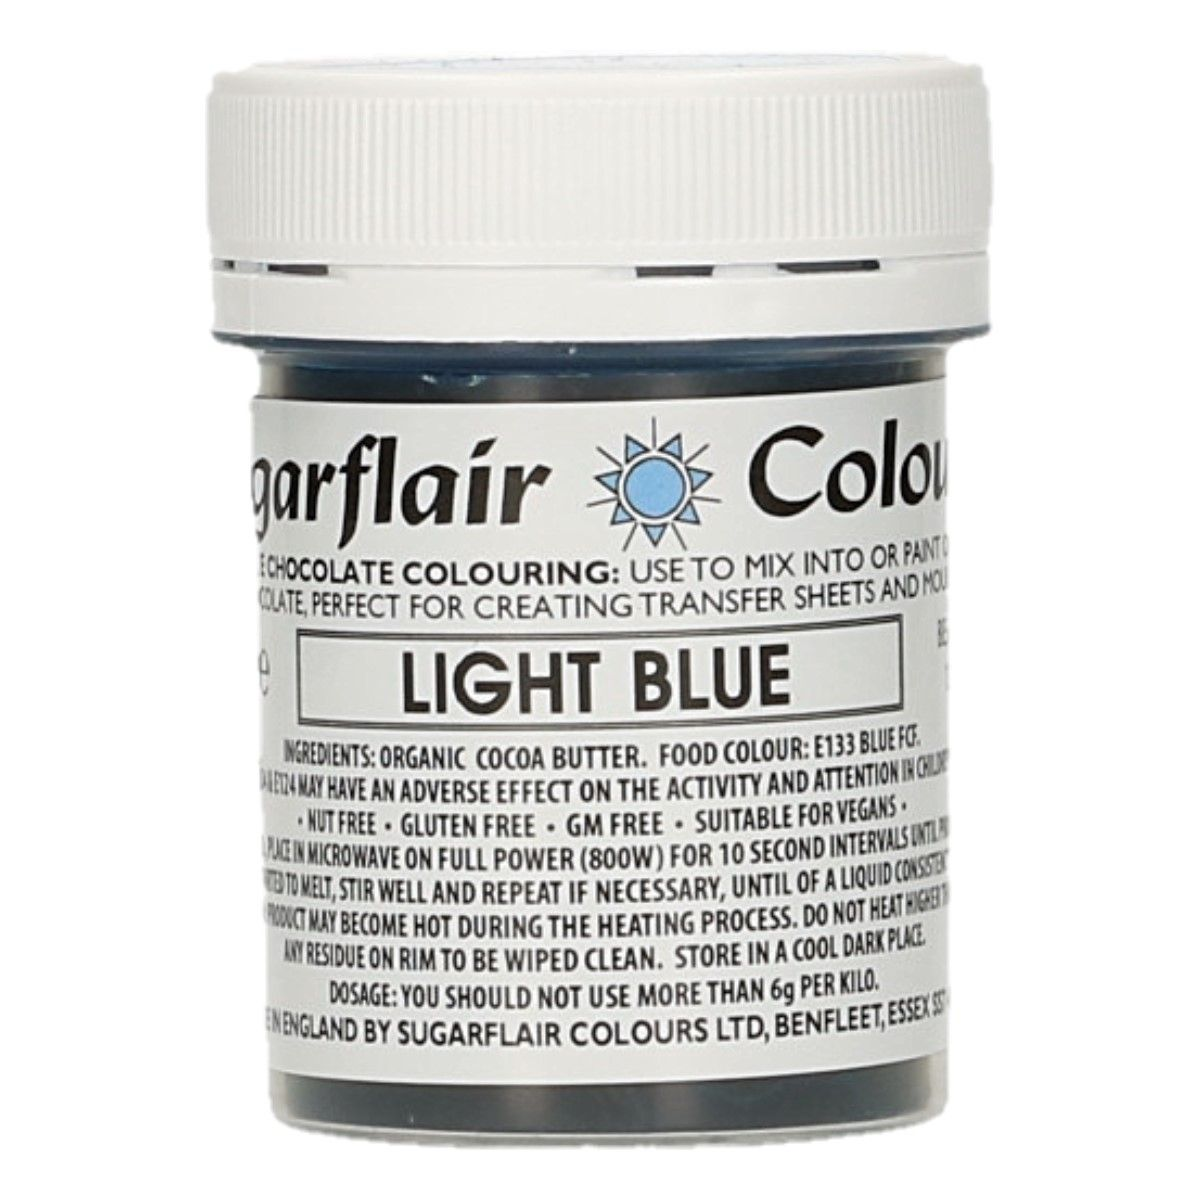 Sugarflair Chocolate Colour Light Blue 35g